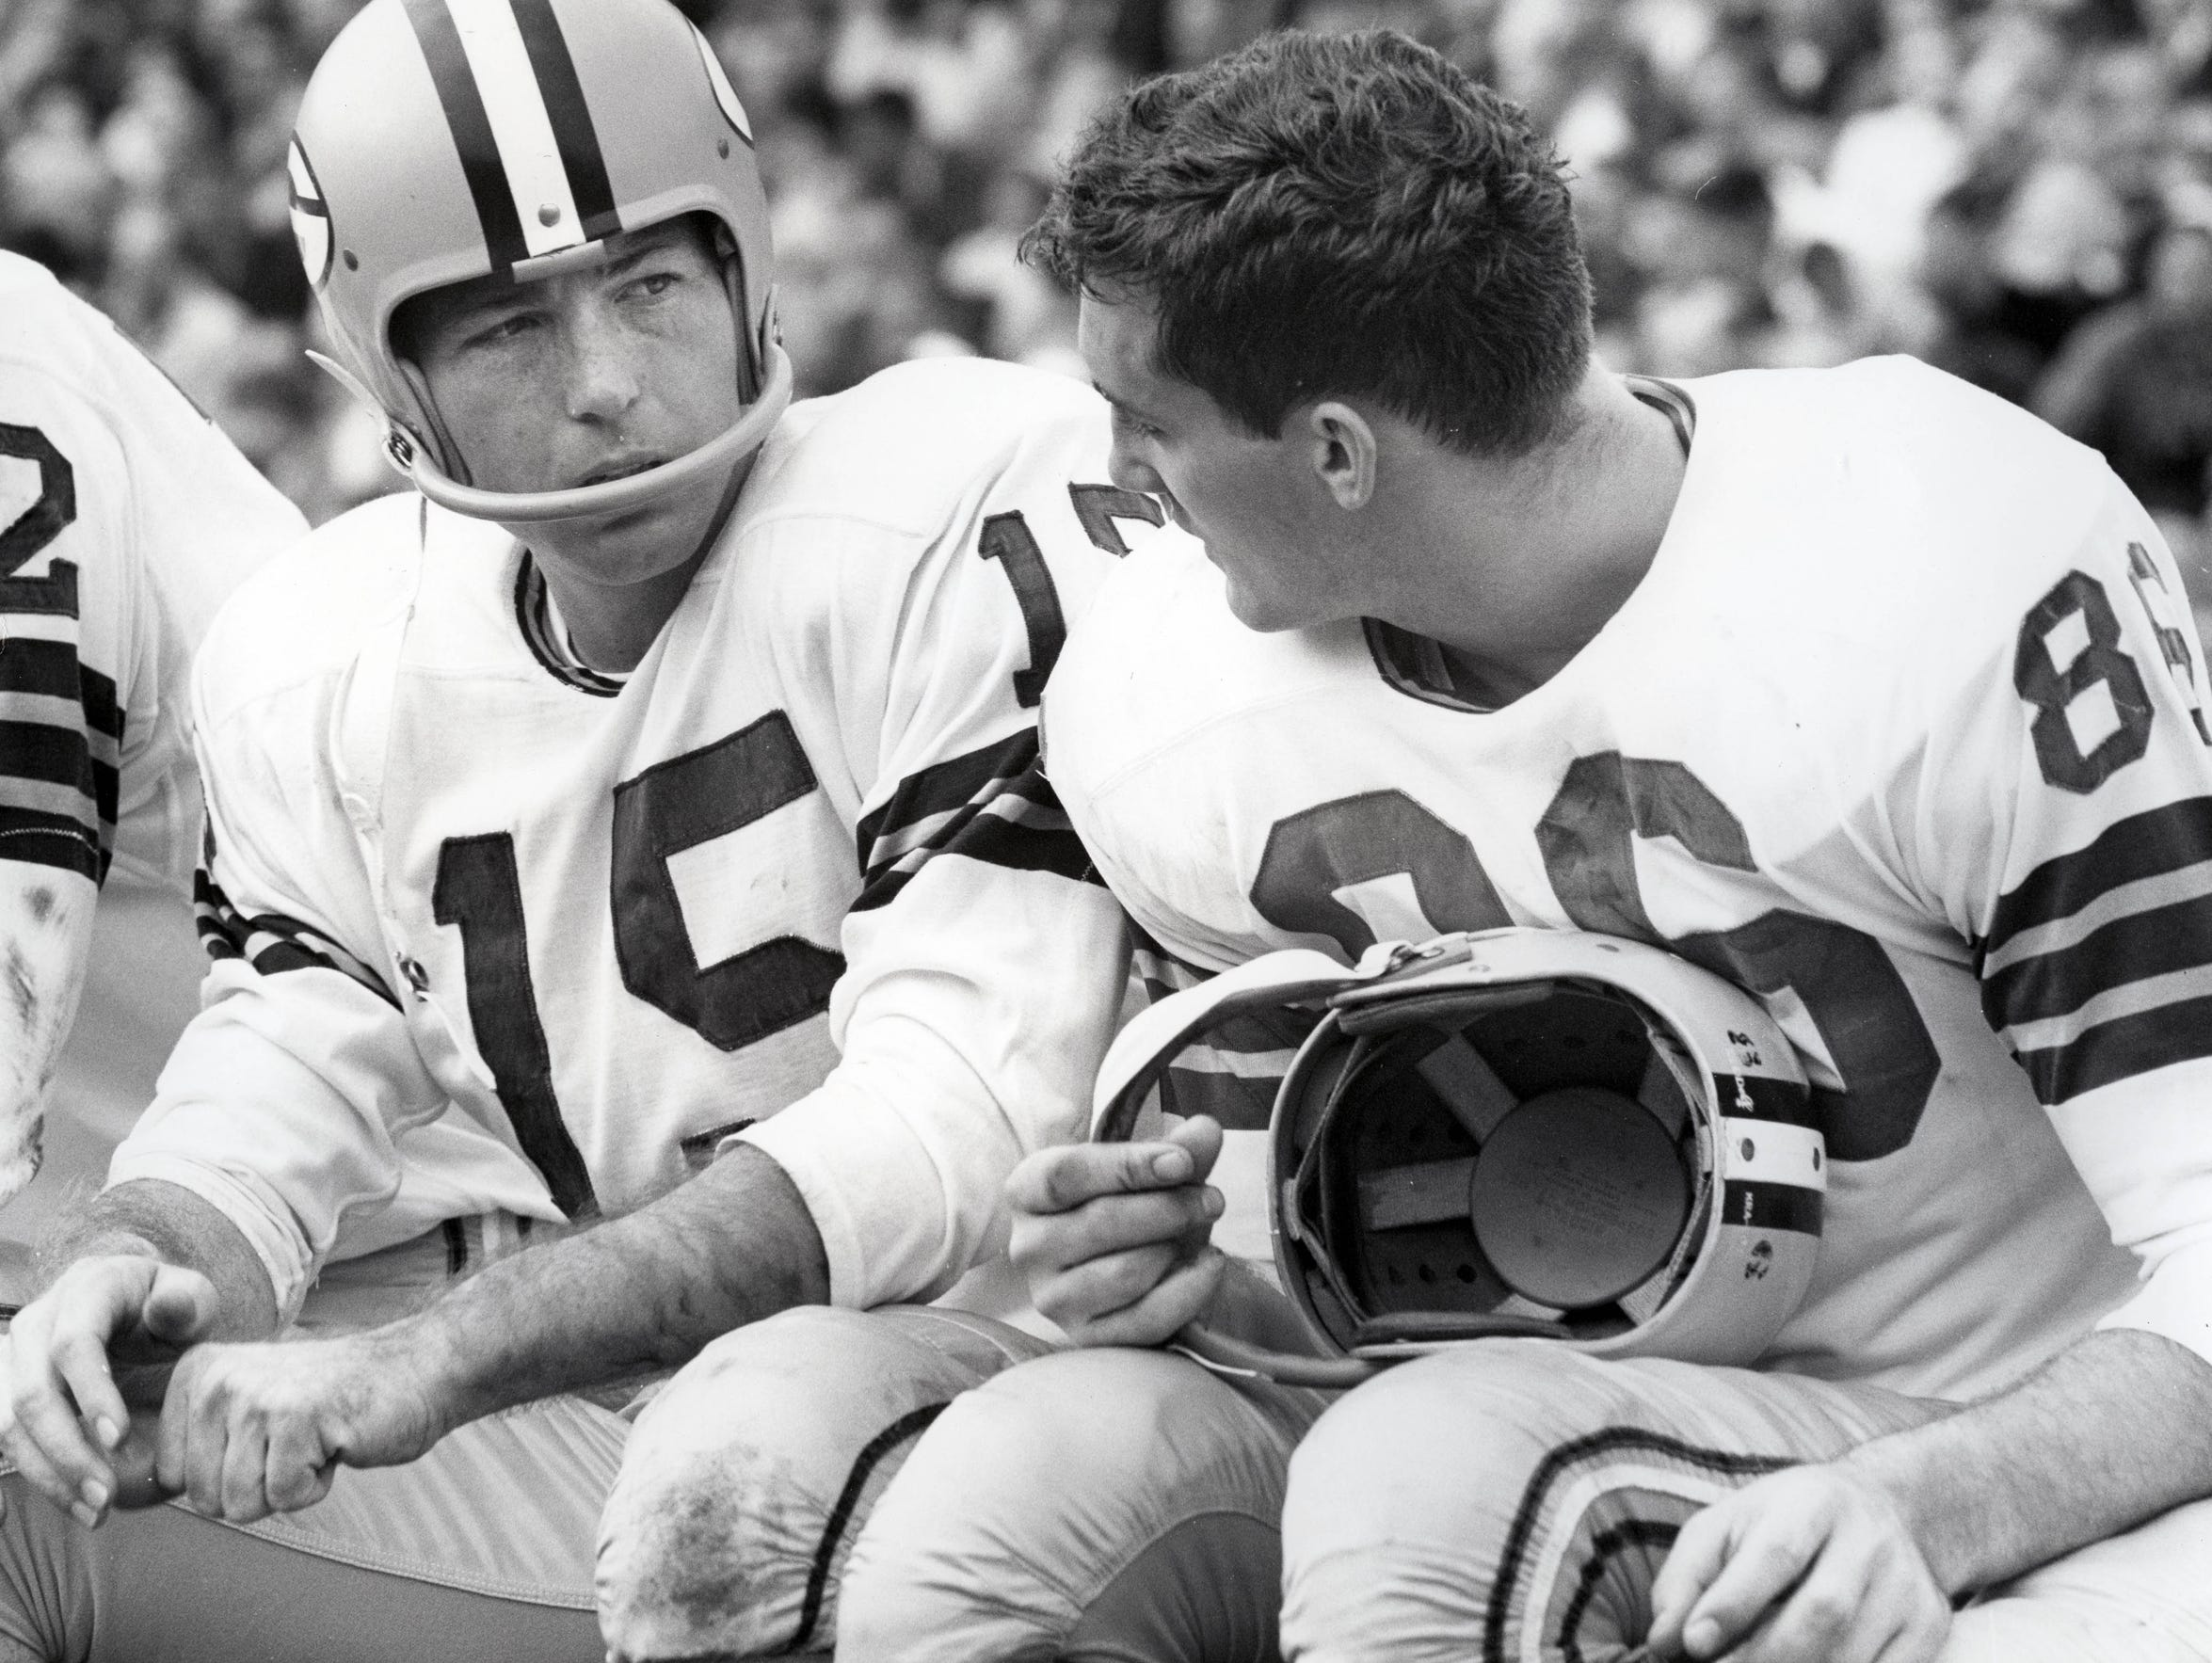 """""""I was in almost every huddle for nine years,"""" says Boyd Dowler (right), pictured on the sideline with Bart Starr. """"I don't remember Bart ever making a bad call. ... He had an unusual instinct for doing the right thing."""""""